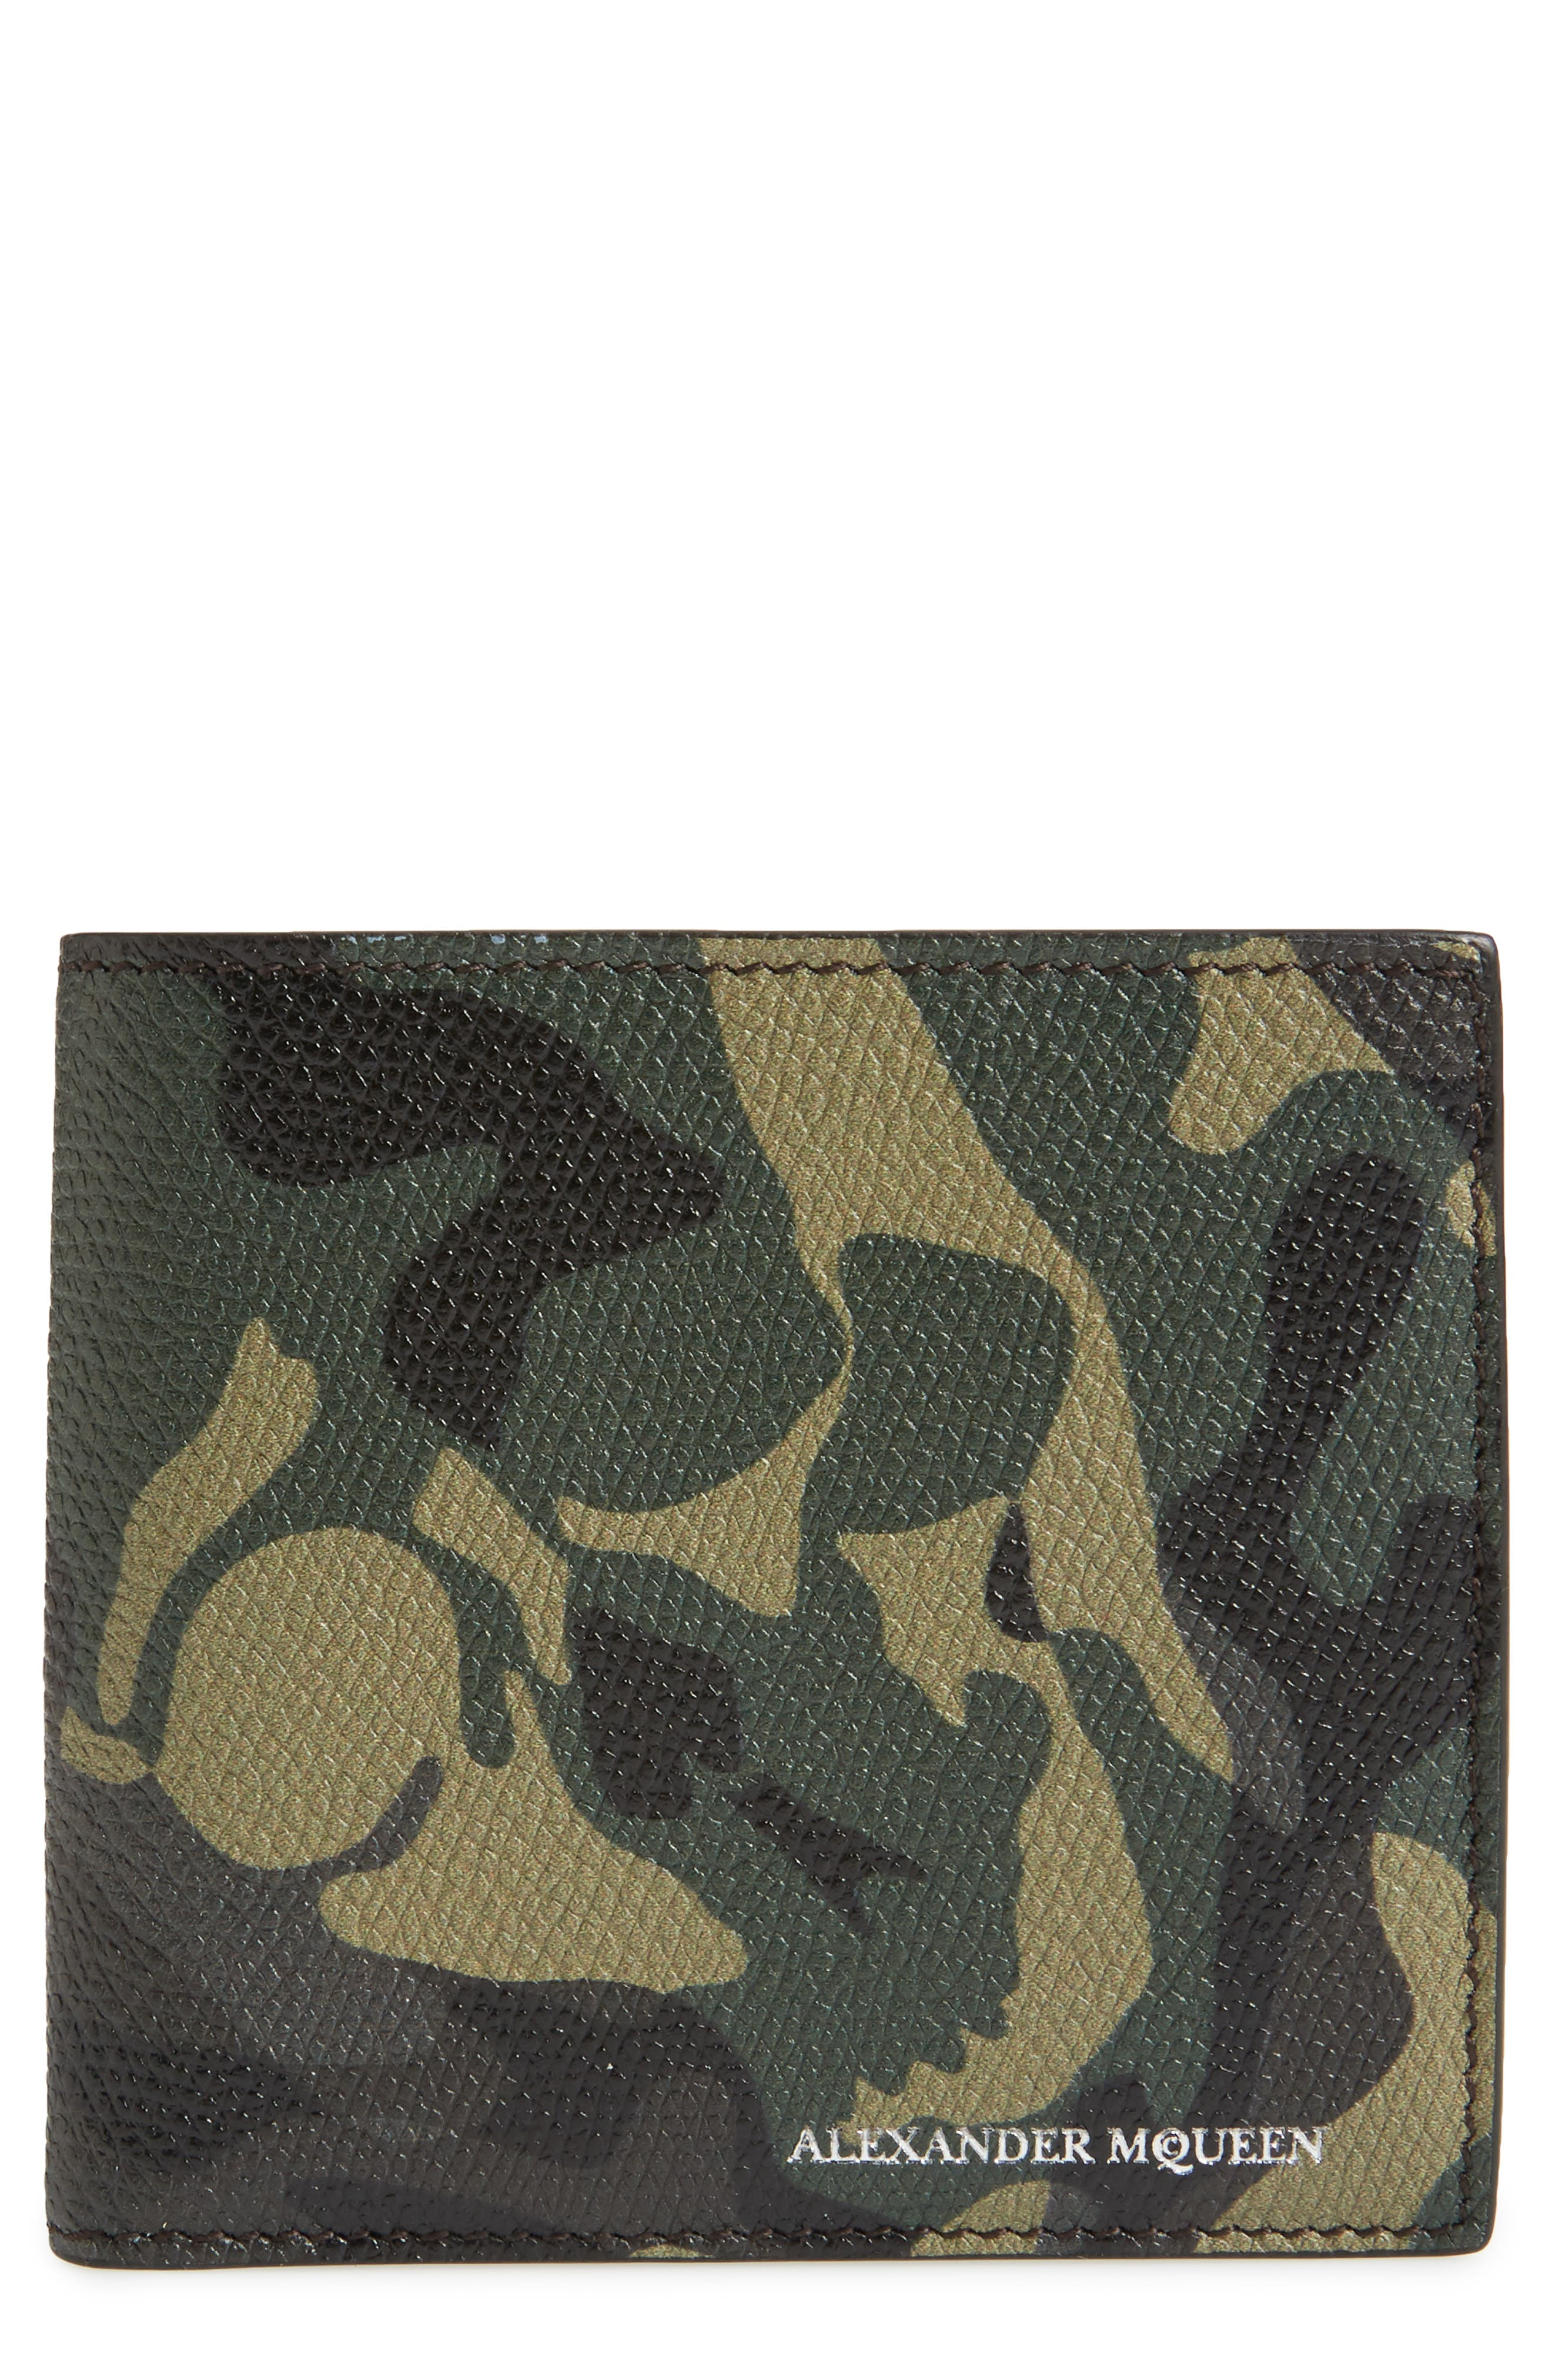 Camo Leather Billfold Wallet,                             Main thumbnail 1, color,                             009